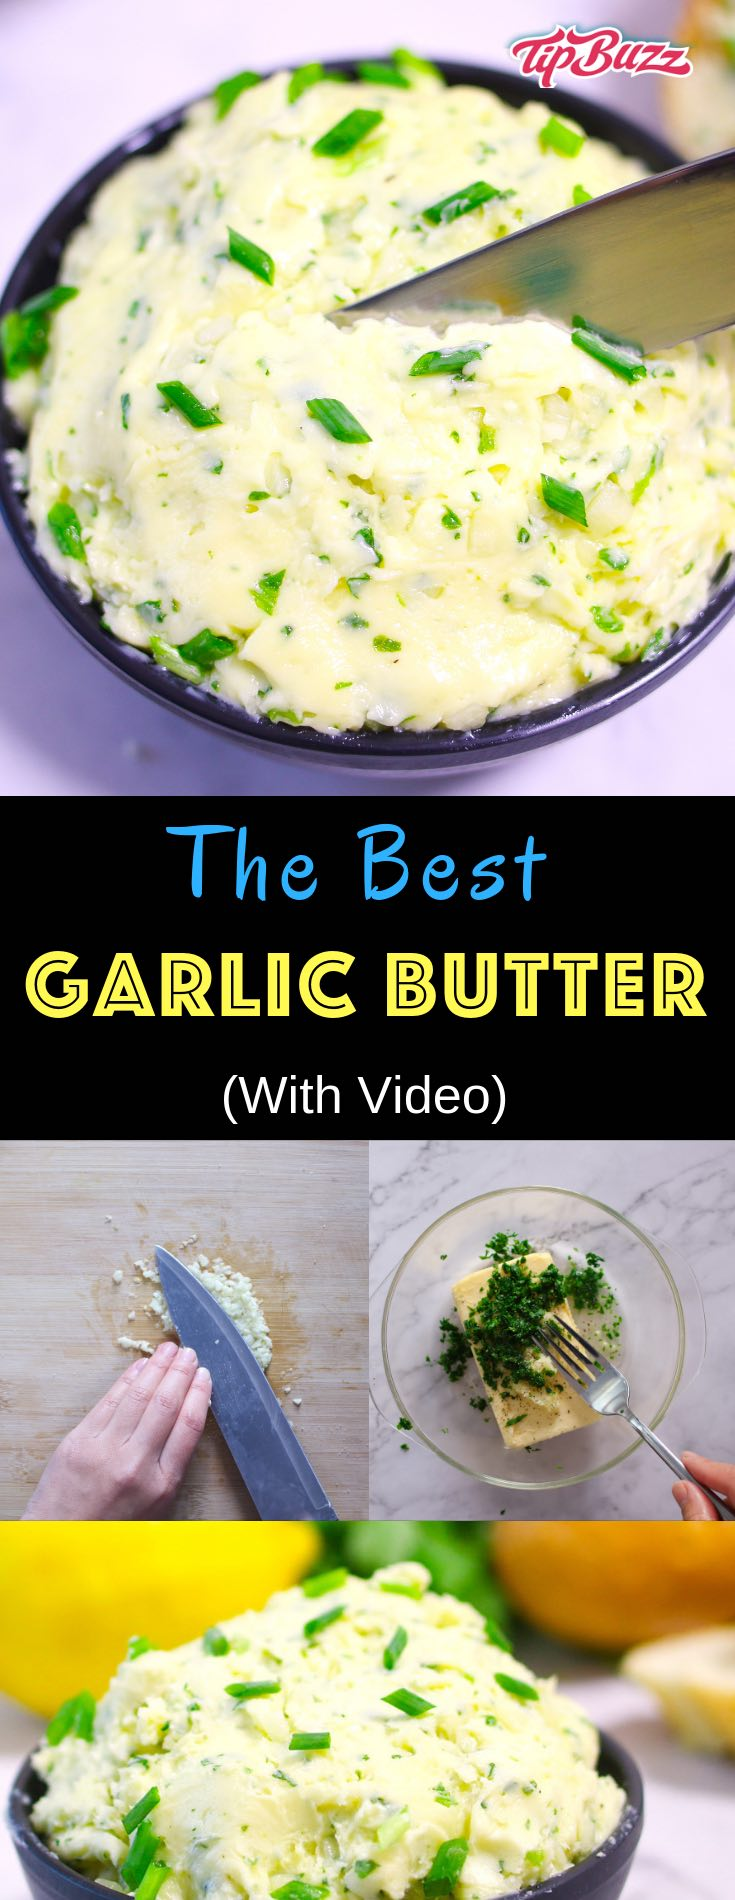 Garlic butter is a versatile kitchen staple with even the smallest amount adding so much flavor to a dish, whether meat, seafood, vegetables, mashed potatoes, pasta and more.